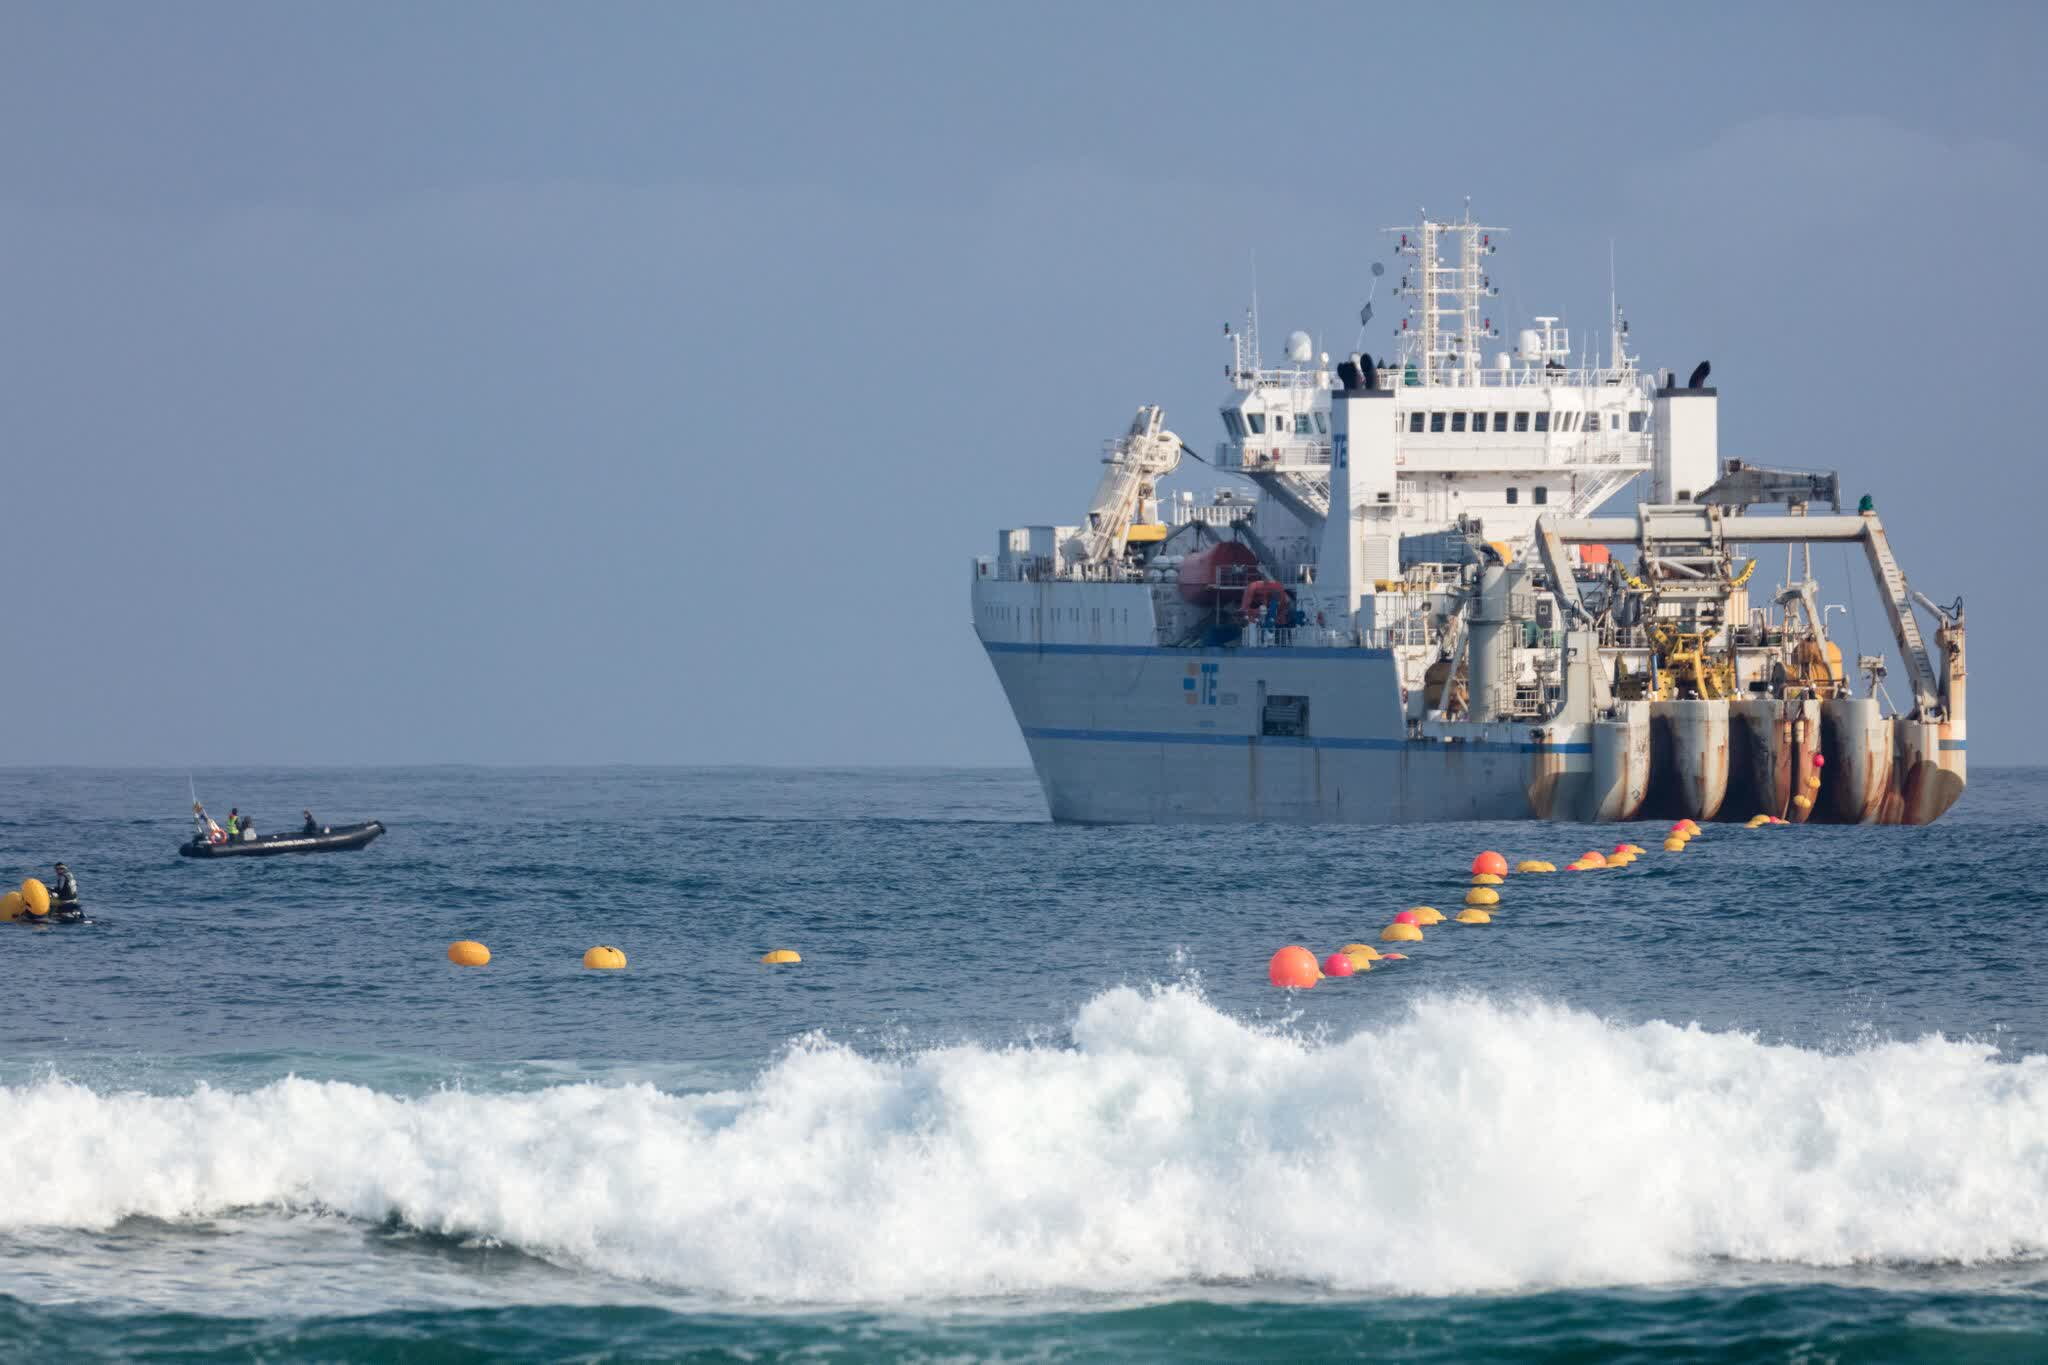 Facebook hires NEC to build a subsea fiber-optic cable between Europe and the US